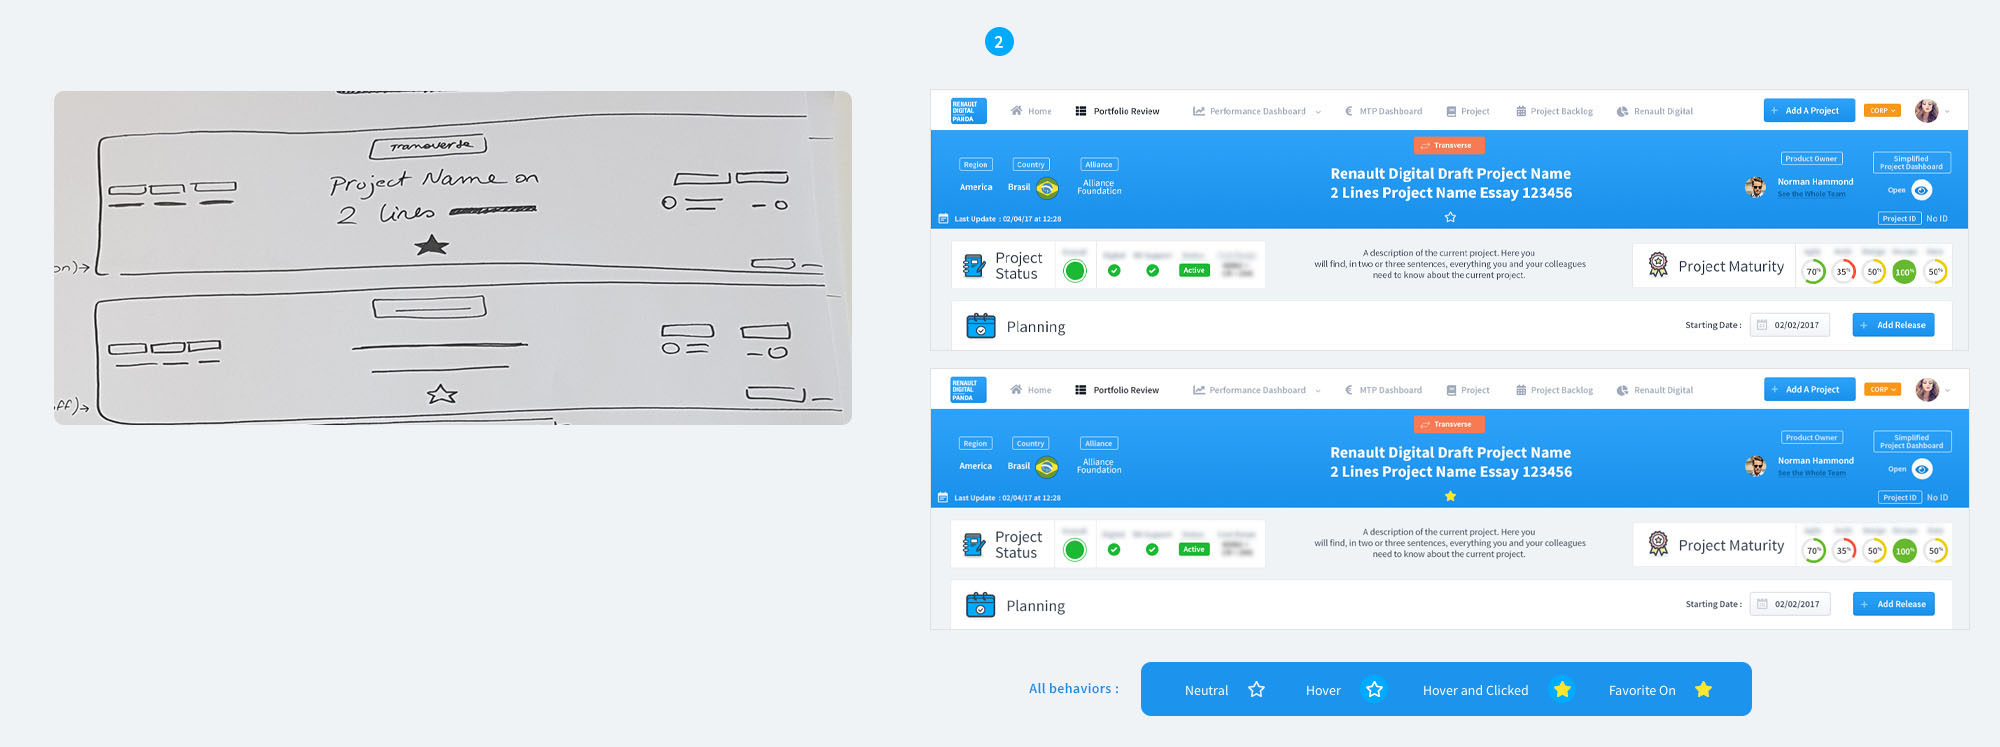 Project-Dashboard-UX-wireframes-UI-mockup-blurred